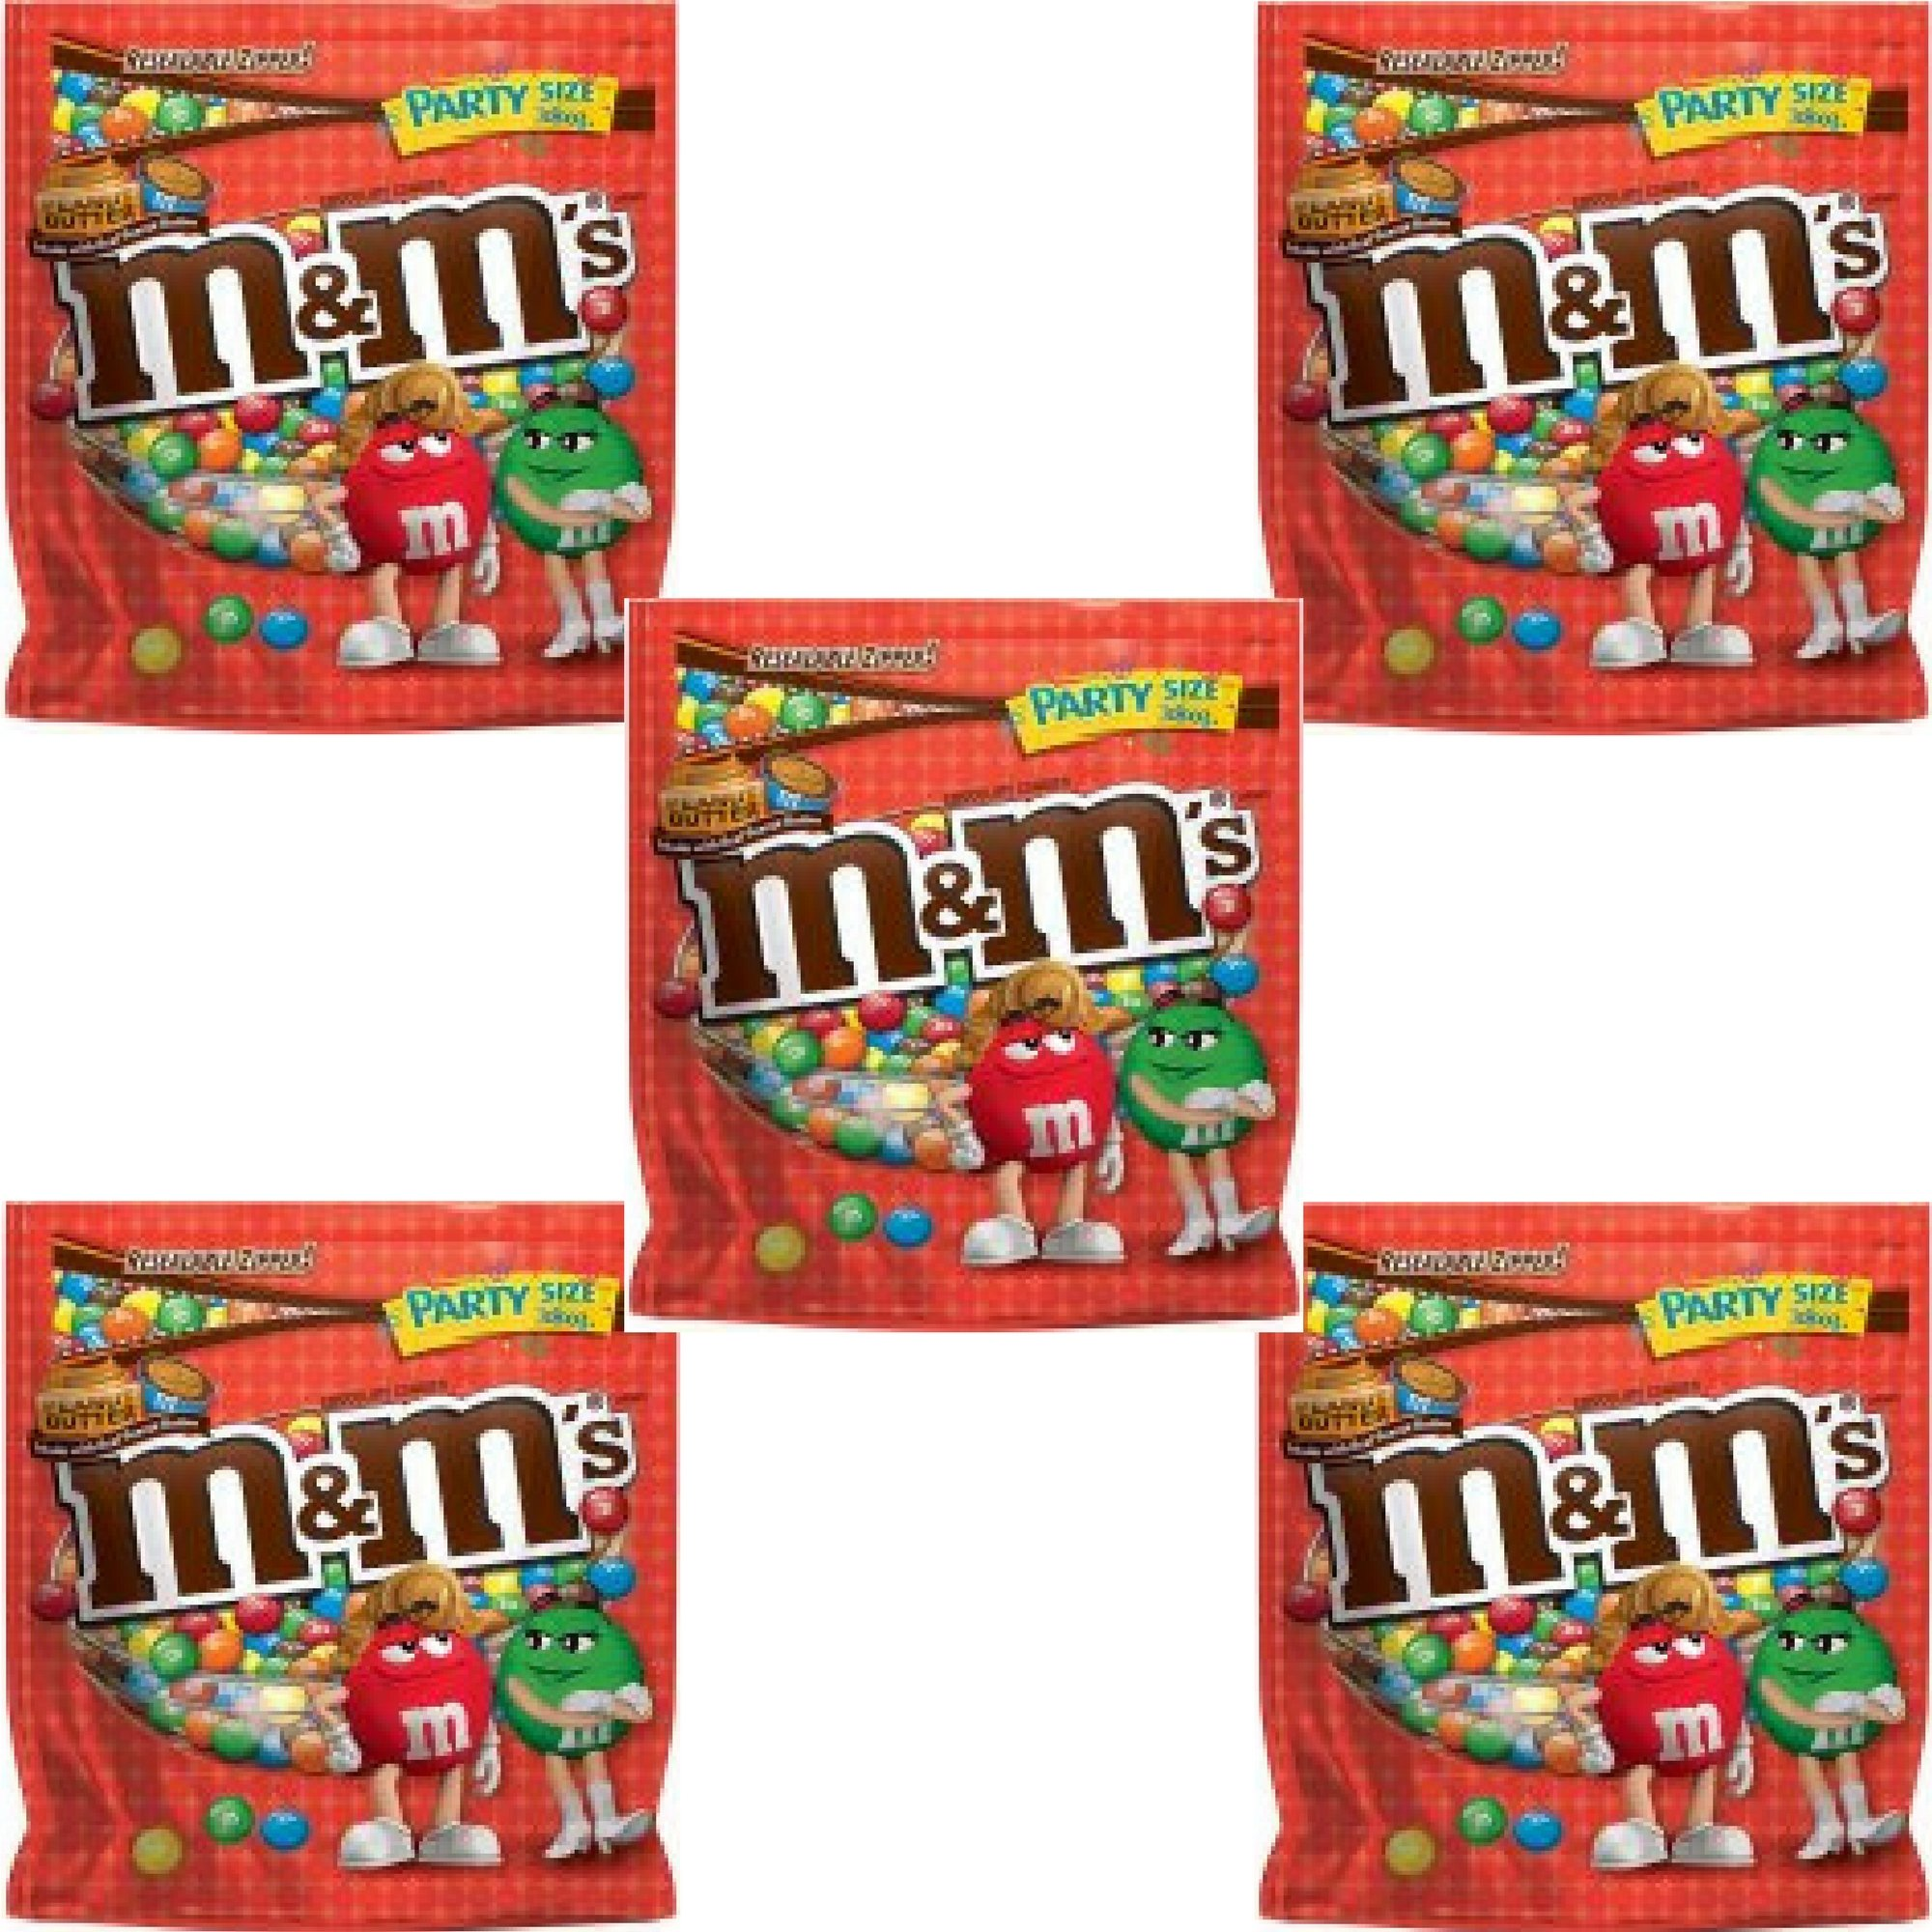 M&M'S Peanut Butter Chocolate Candy Party Size Bag, 38 oz - Pack of 5 by M&M'S